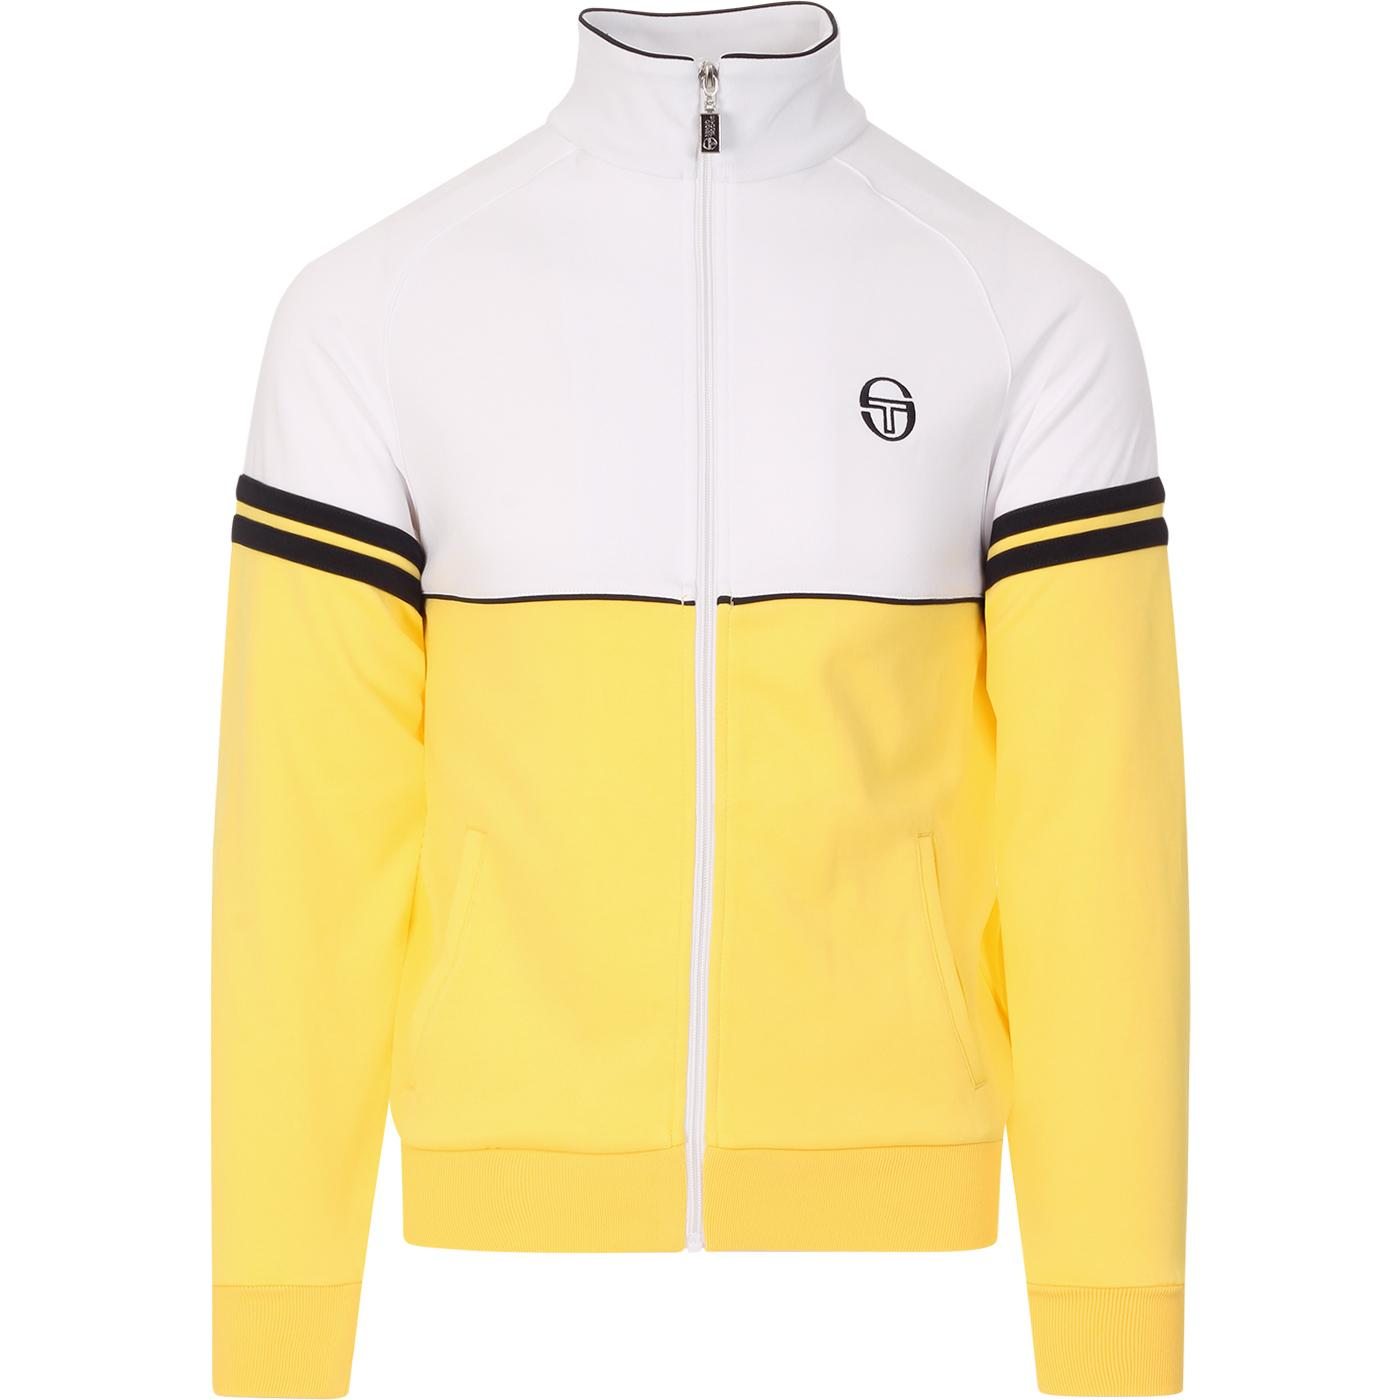 Orion SERGIO TACCHINI Retro 80s Track Top (Y/W)